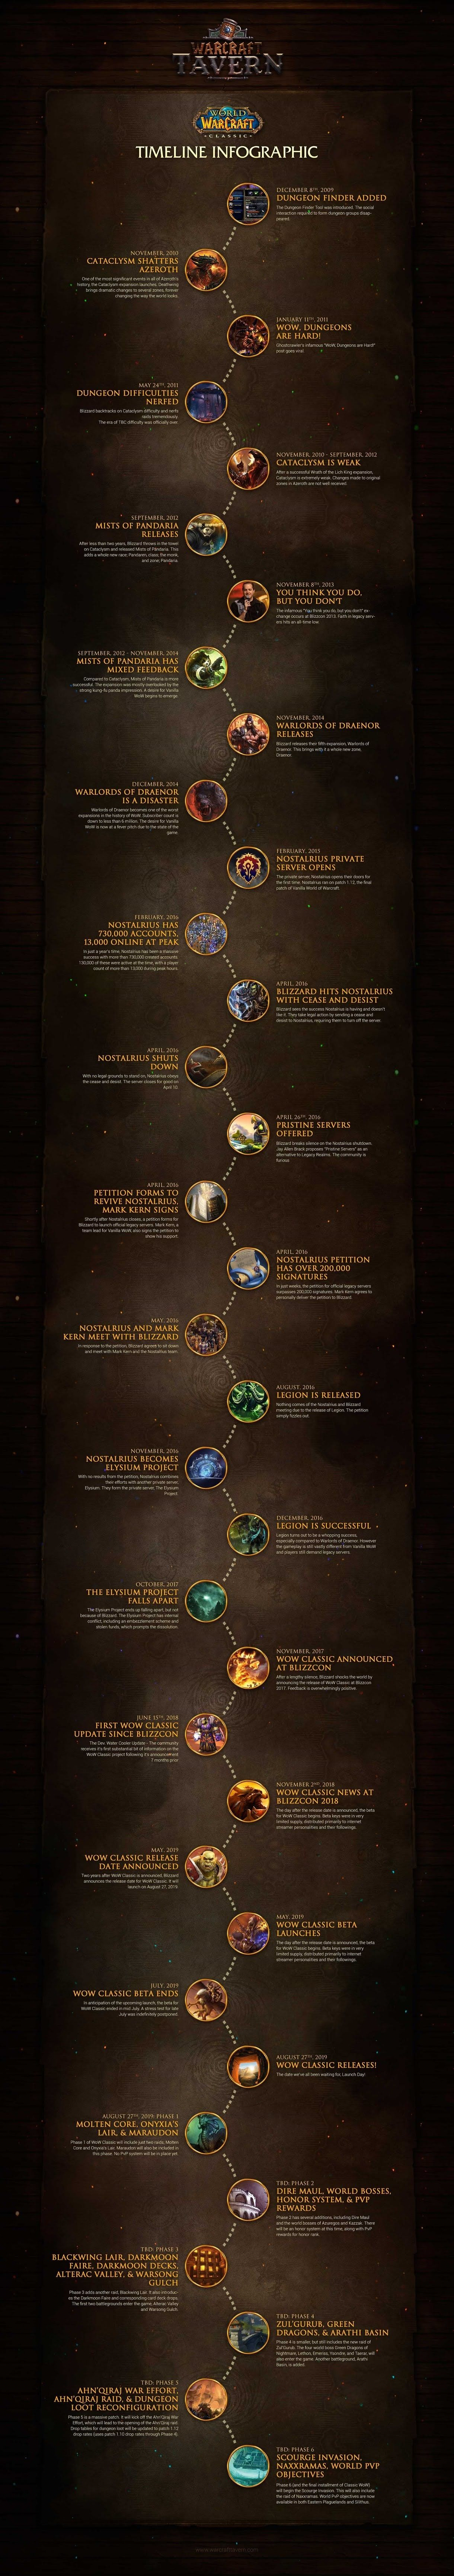 Wow Classic Timeline Infographic Entertainment Infographic Timeline Infographic Infographic Marketing